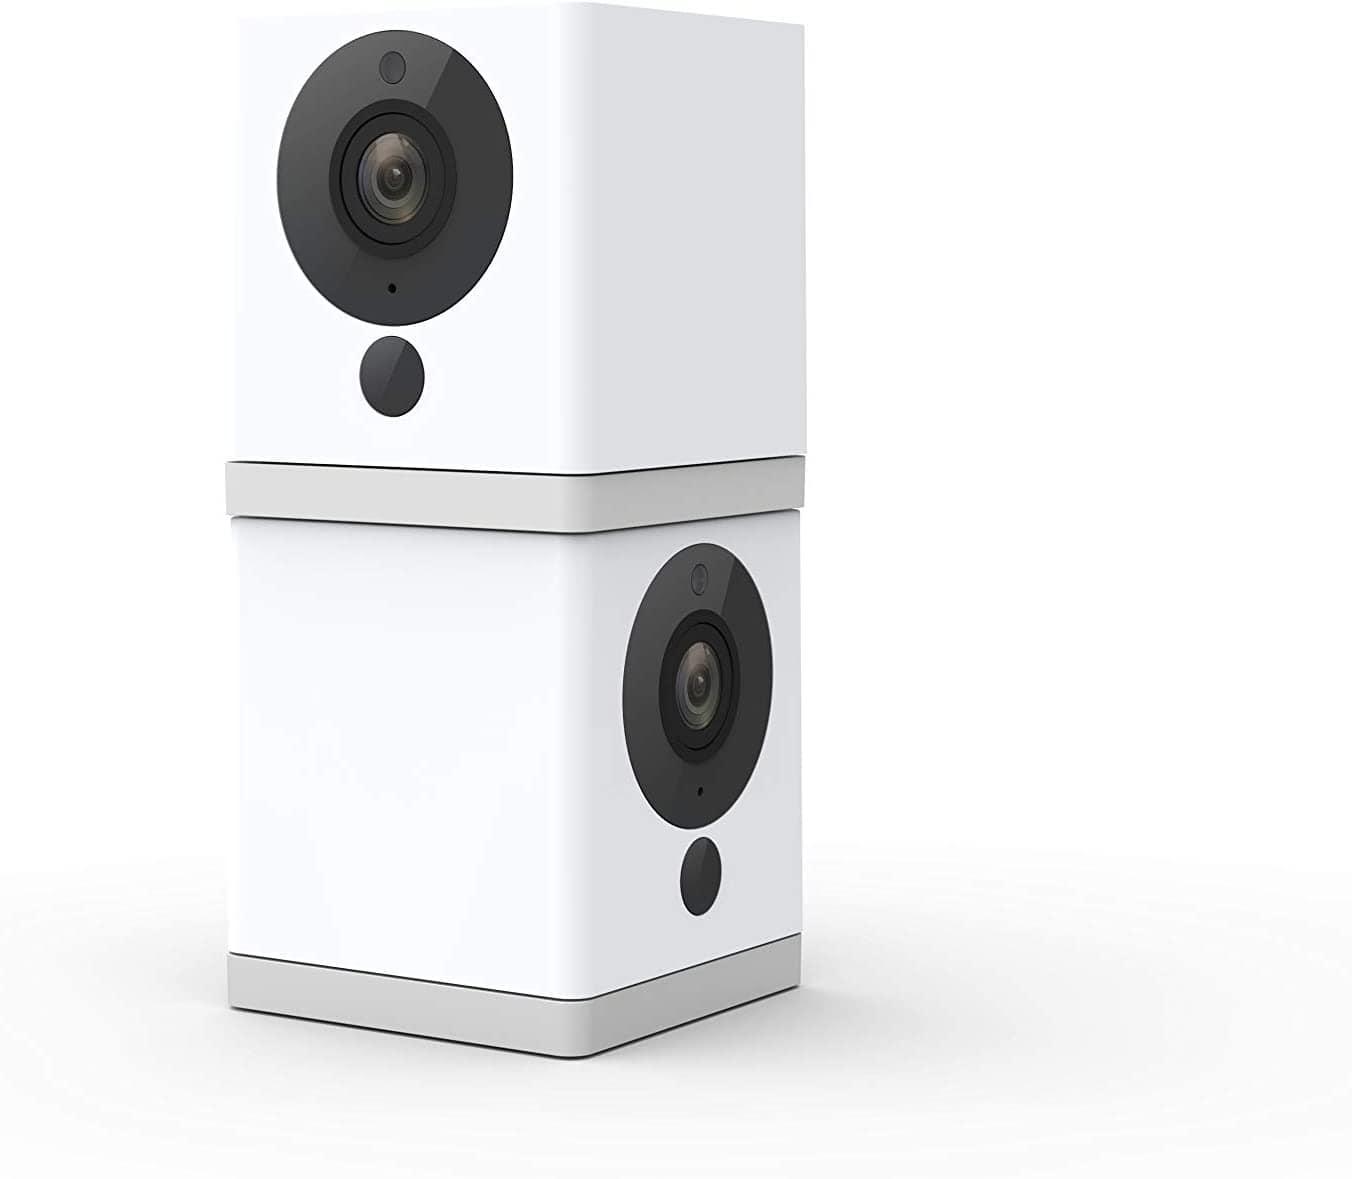 wyze cam 2, 2 pack for 46.25 amazon